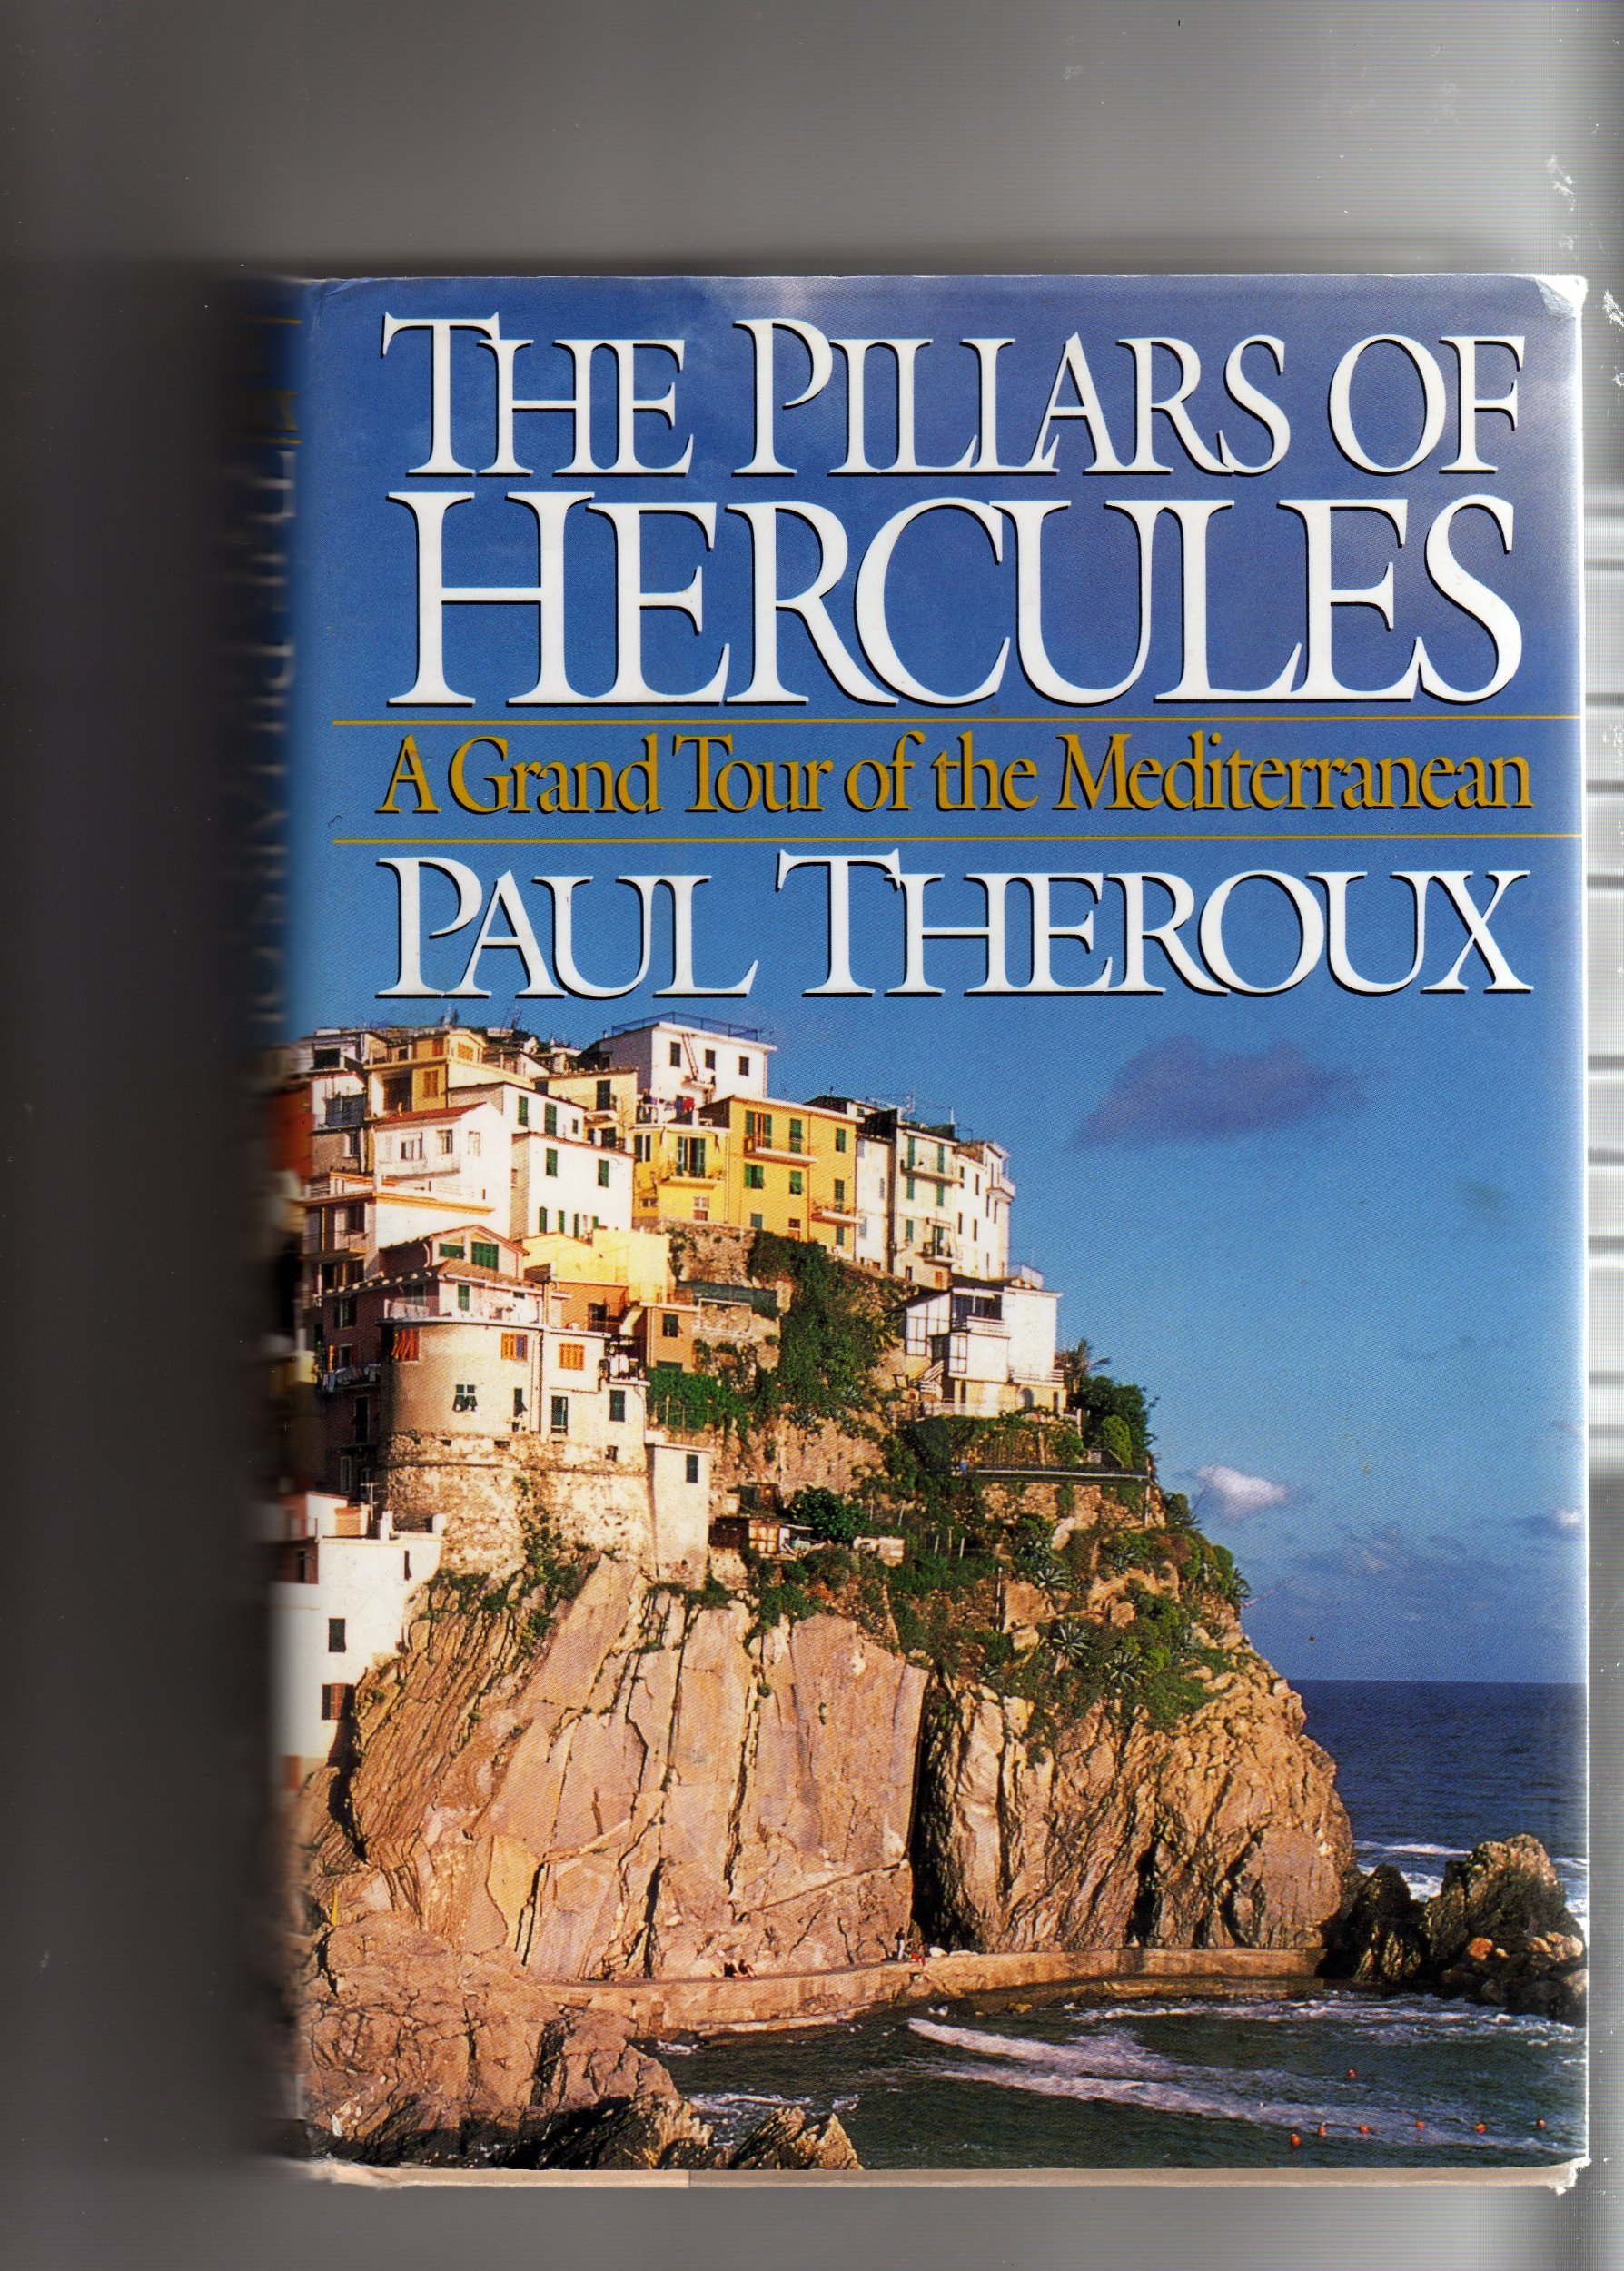 Image OfThe Pillars Of Hercules: A Grand Tour Of The Mediterranean Idioma Inglés